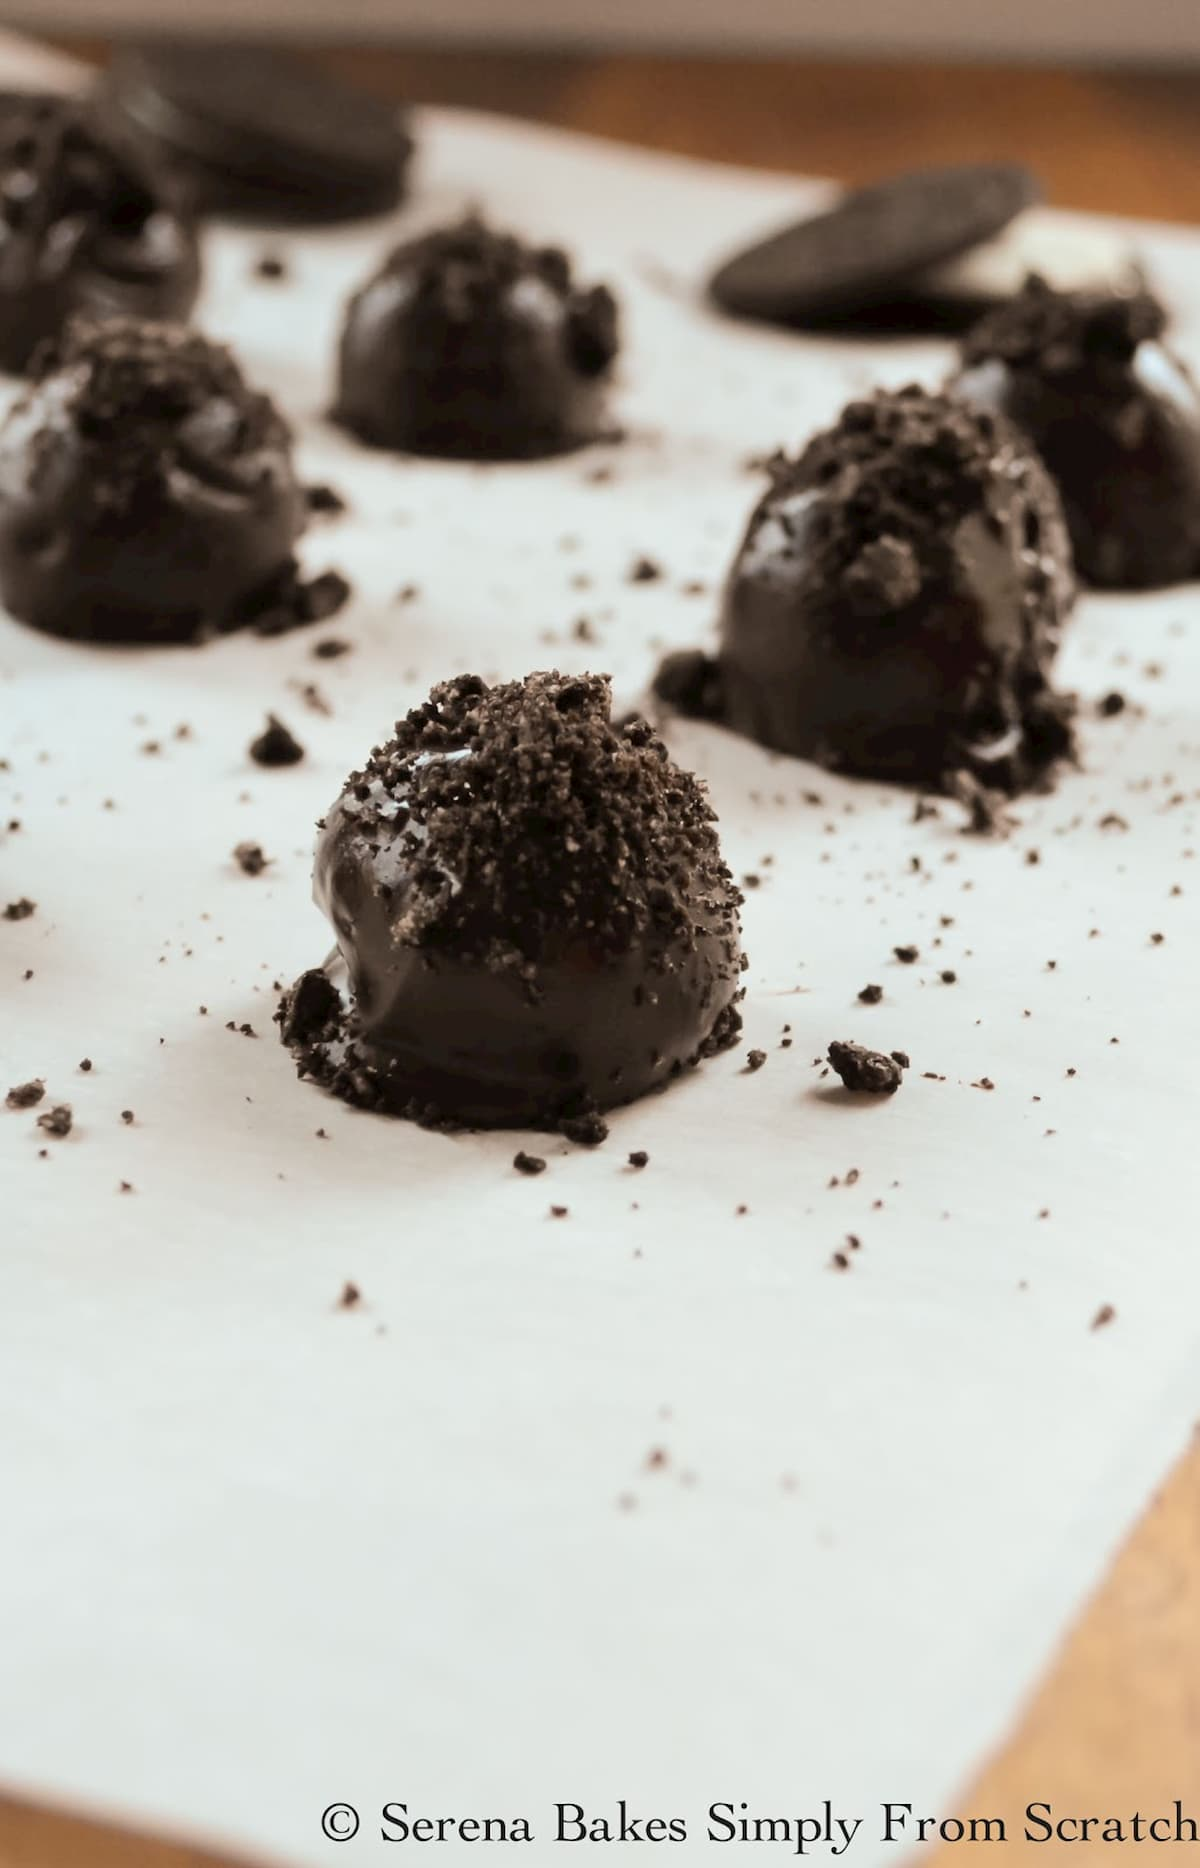 Mint Oreo Cookie Balls dipped in chocolate topped with crushed oreos on a white tray.